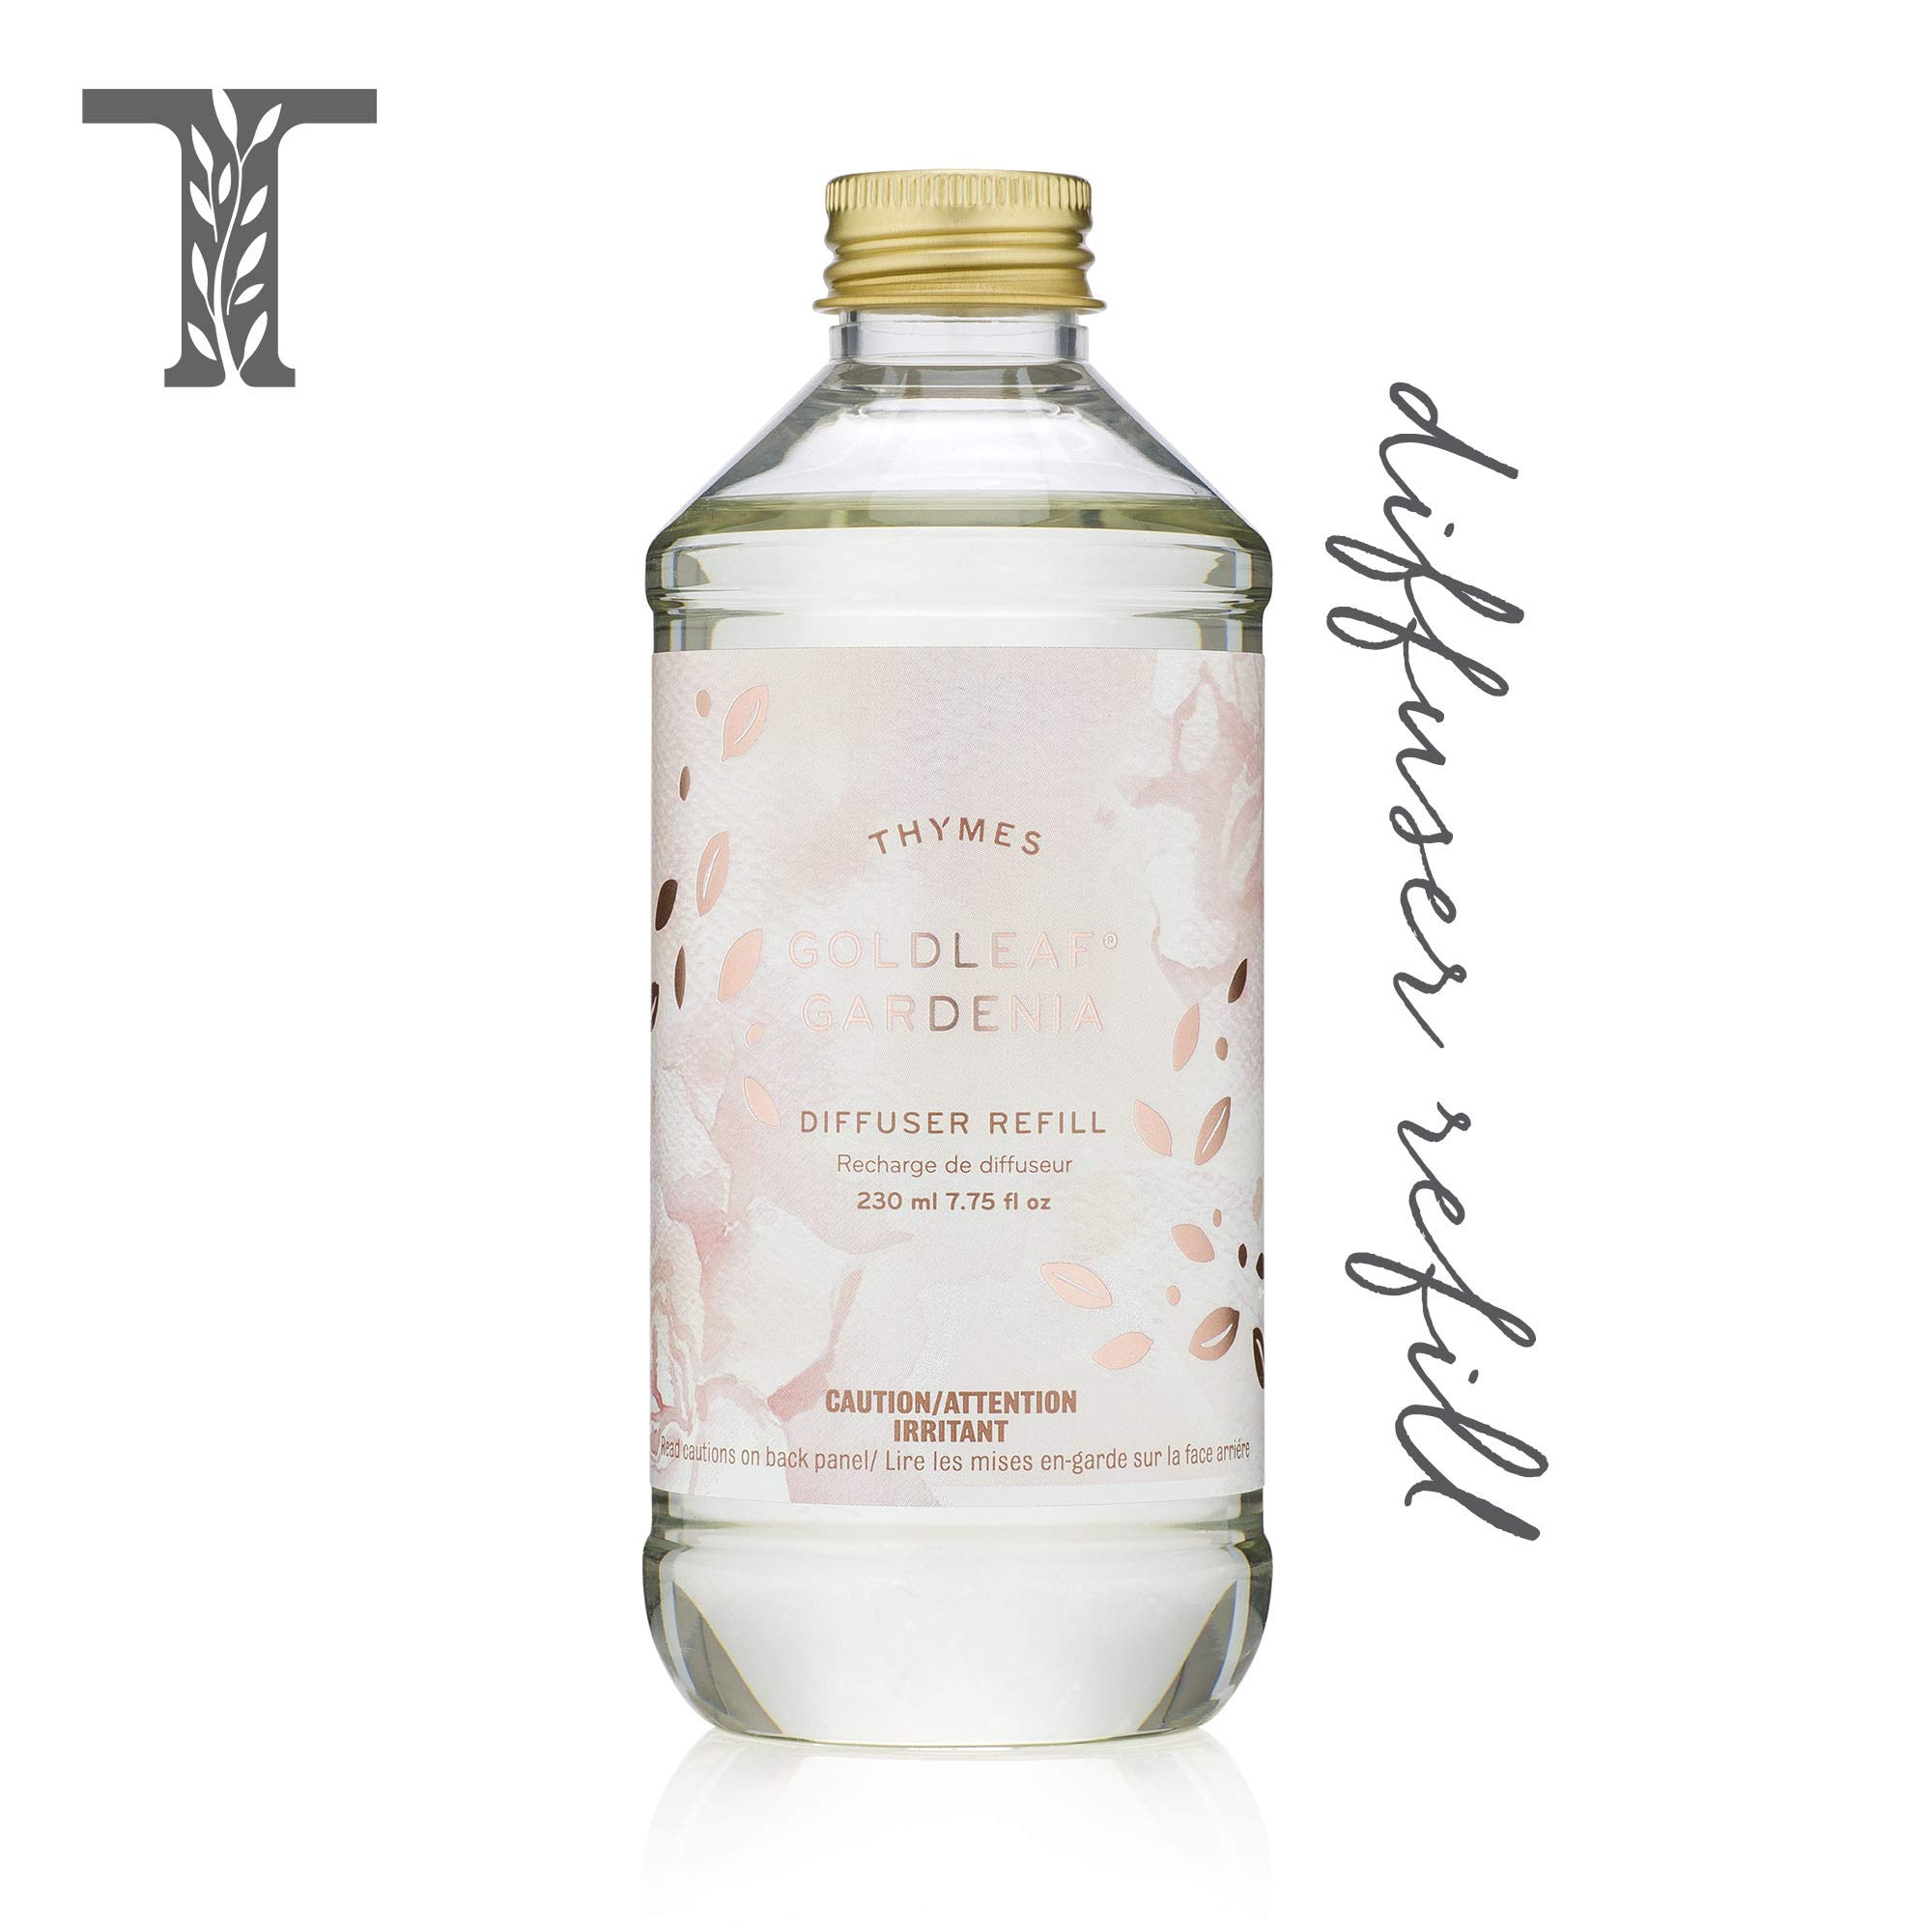 Thymes - Goldleaf Gardenia Aromatic Diffuser Oil Refill - Large Bottle with Floral Magnolia Scent - 7.75 oz by Thymes